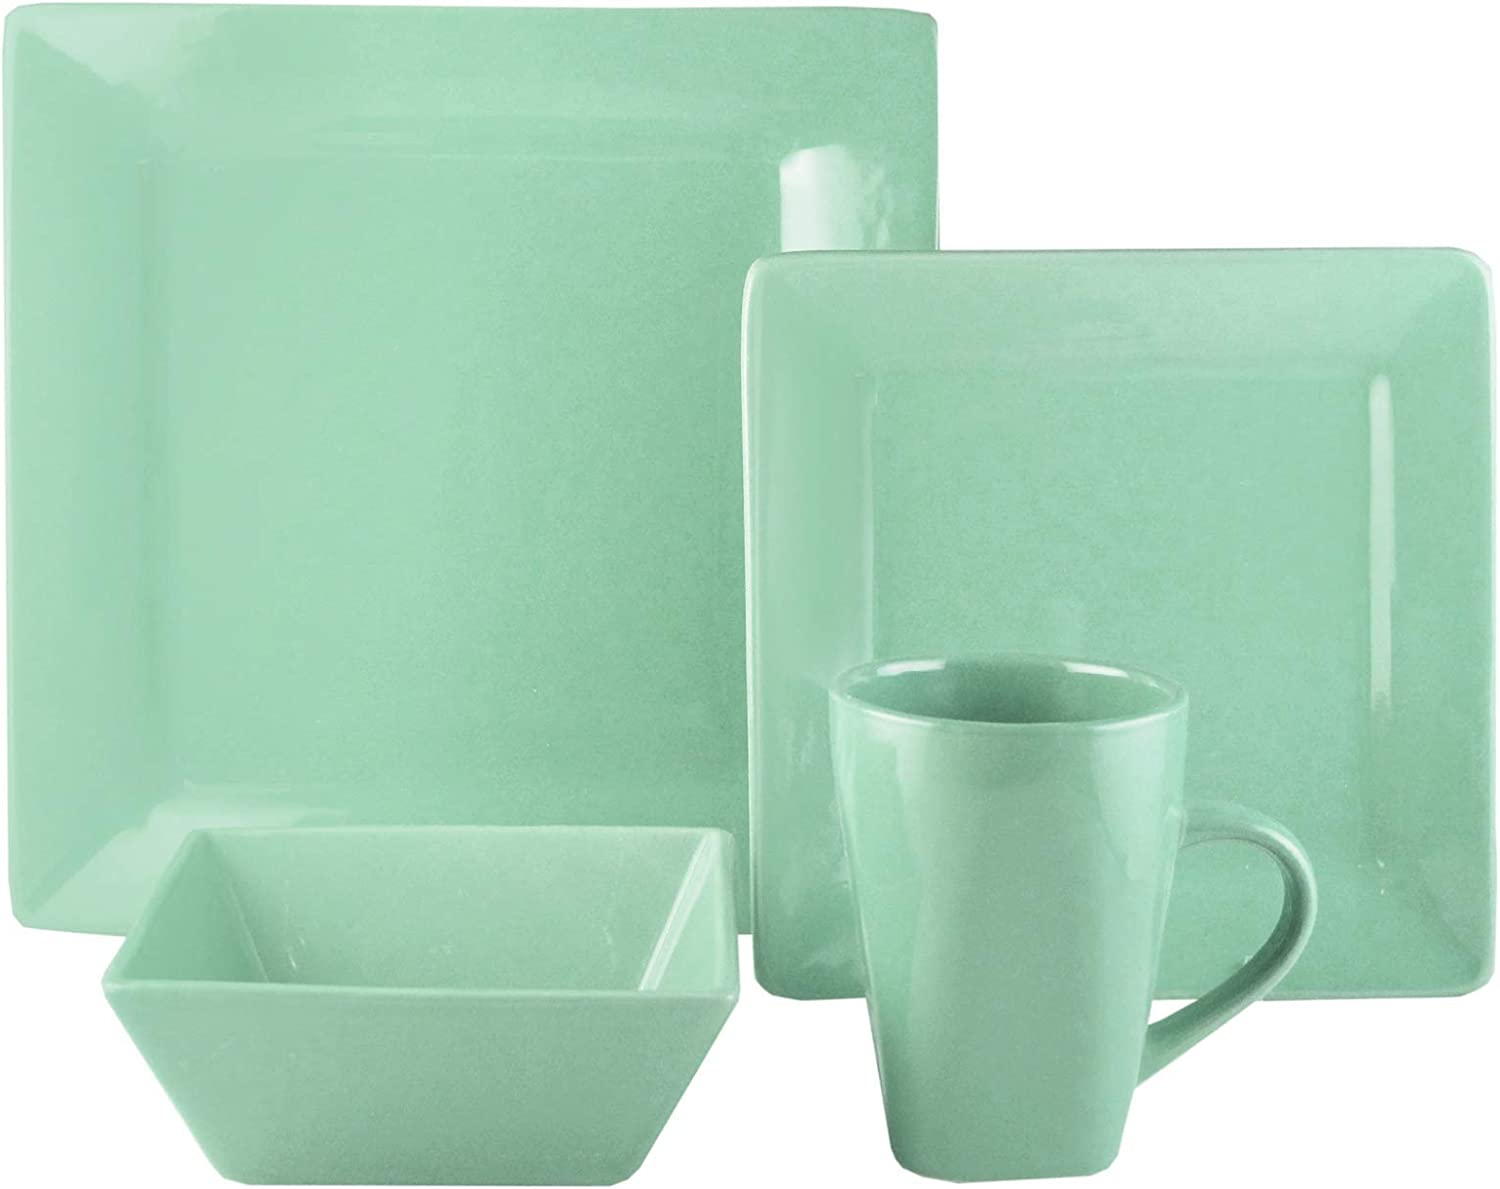 American Atelier Casual Dinnerware Set – 16-Piece Stoneware Party Collection w/ 4 Dinner Salad Plates, 4 Bowls & 4 Mugs – Gift Idea for Any Occasion, Square, Green